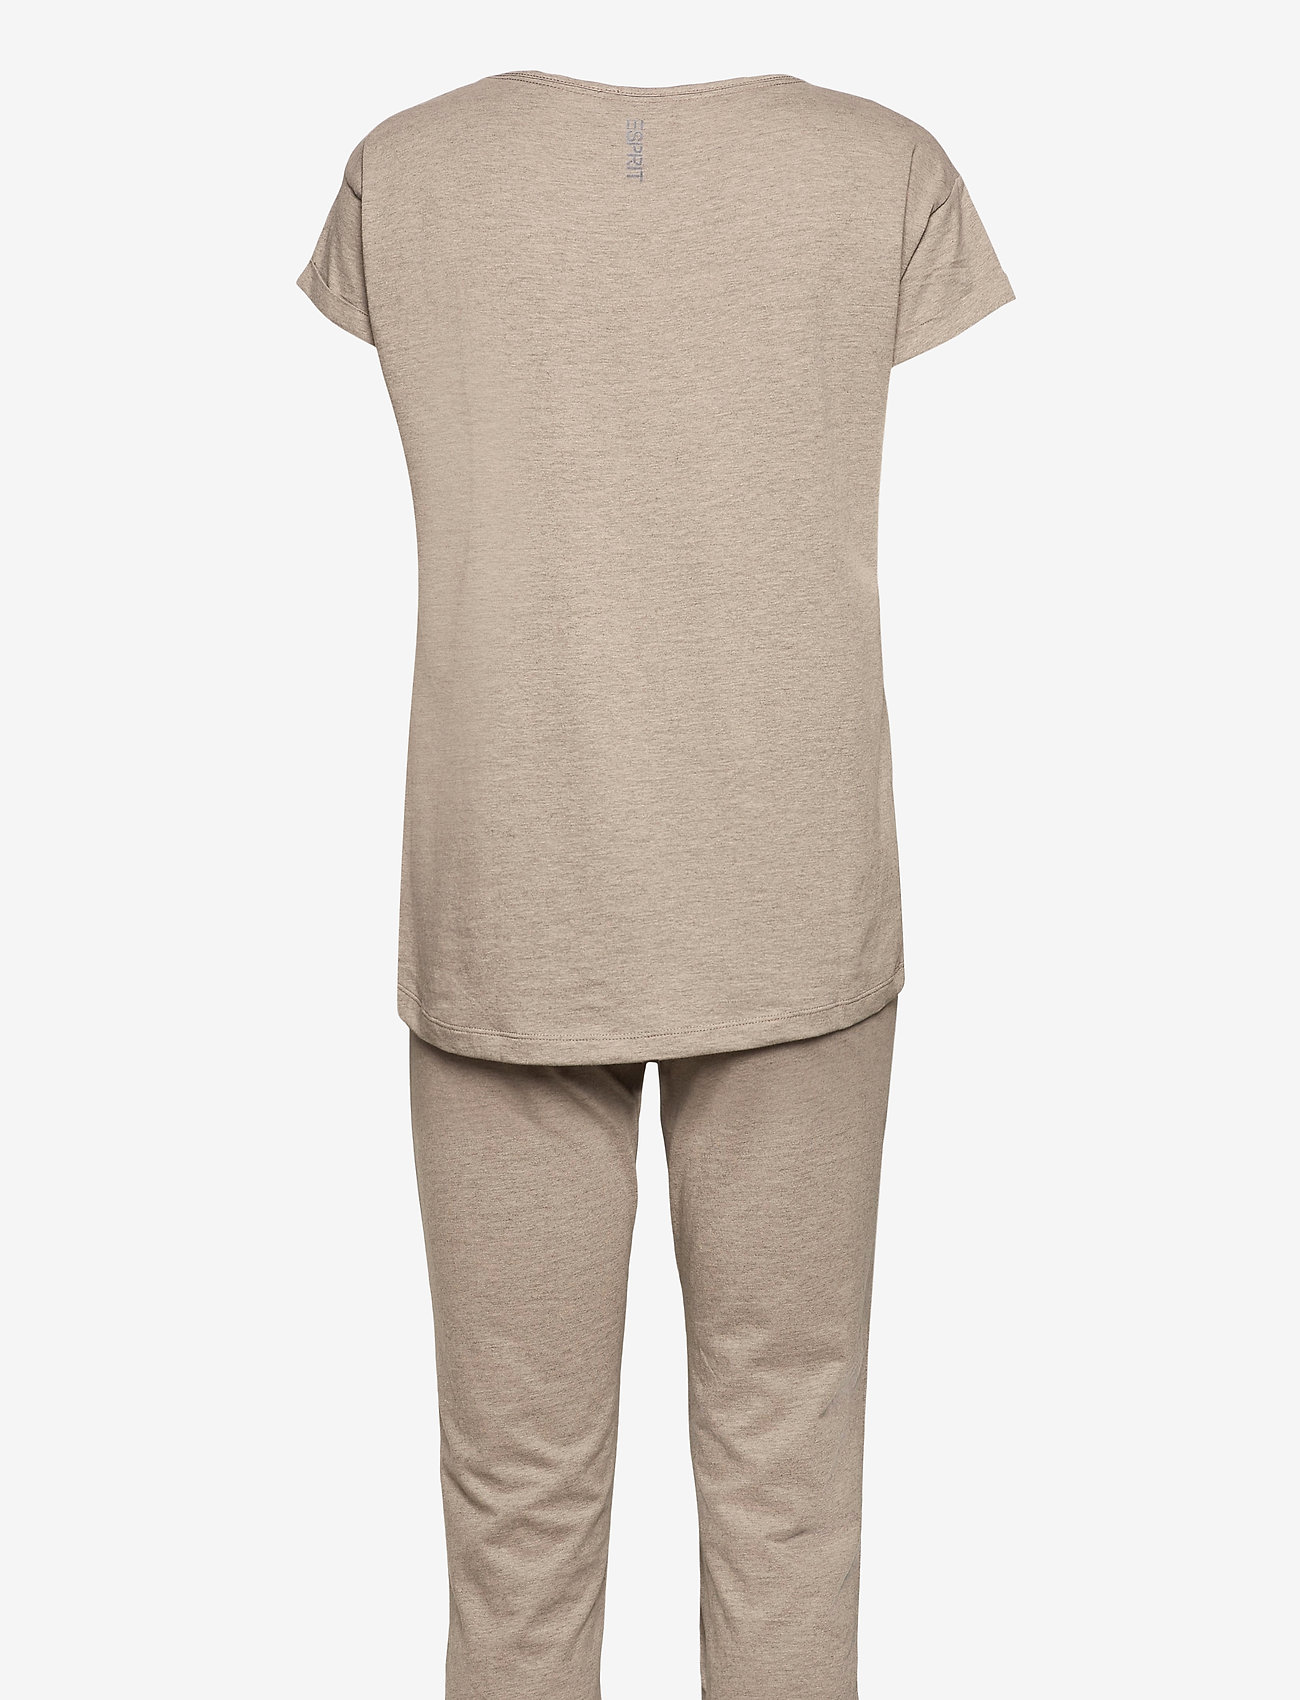 Esprit Bodywear Women - Pyjamas - pyjama''s - light taupe 2 - 1